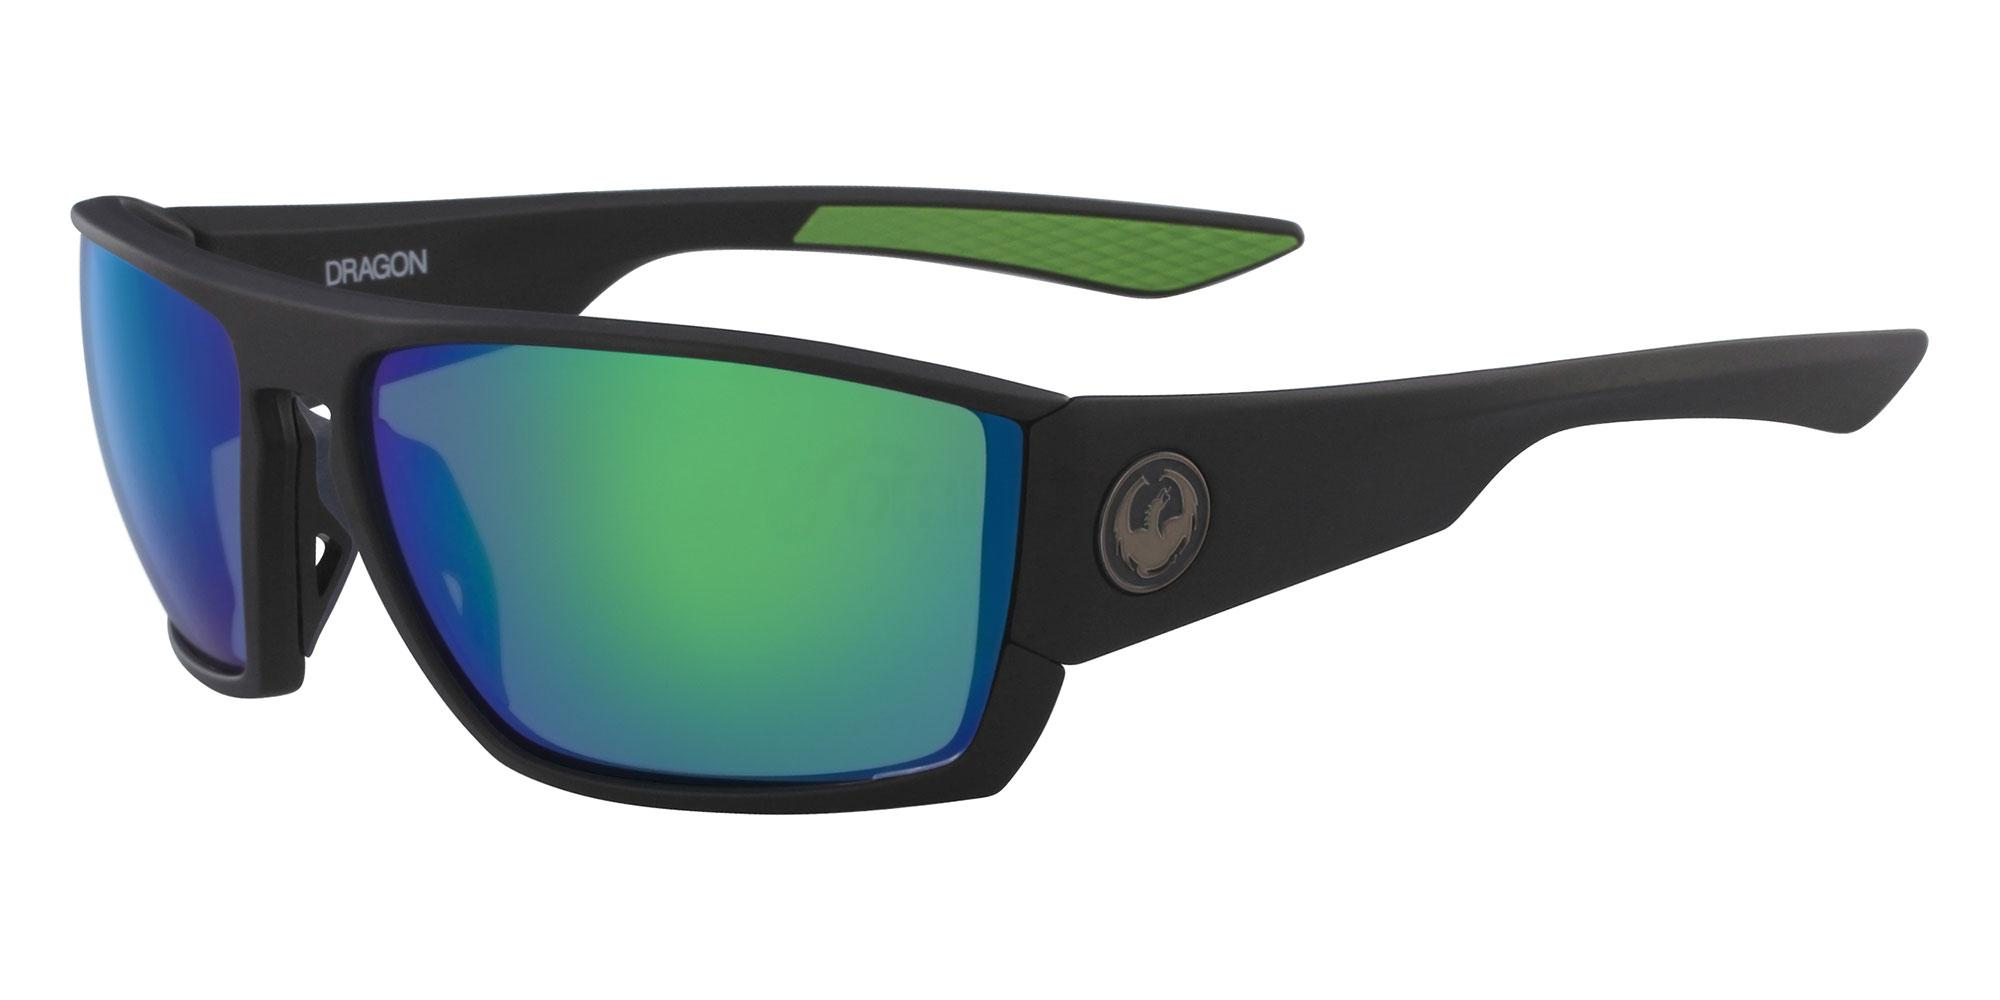 007 DR CUTBACK ION Sunglasses, Dragon